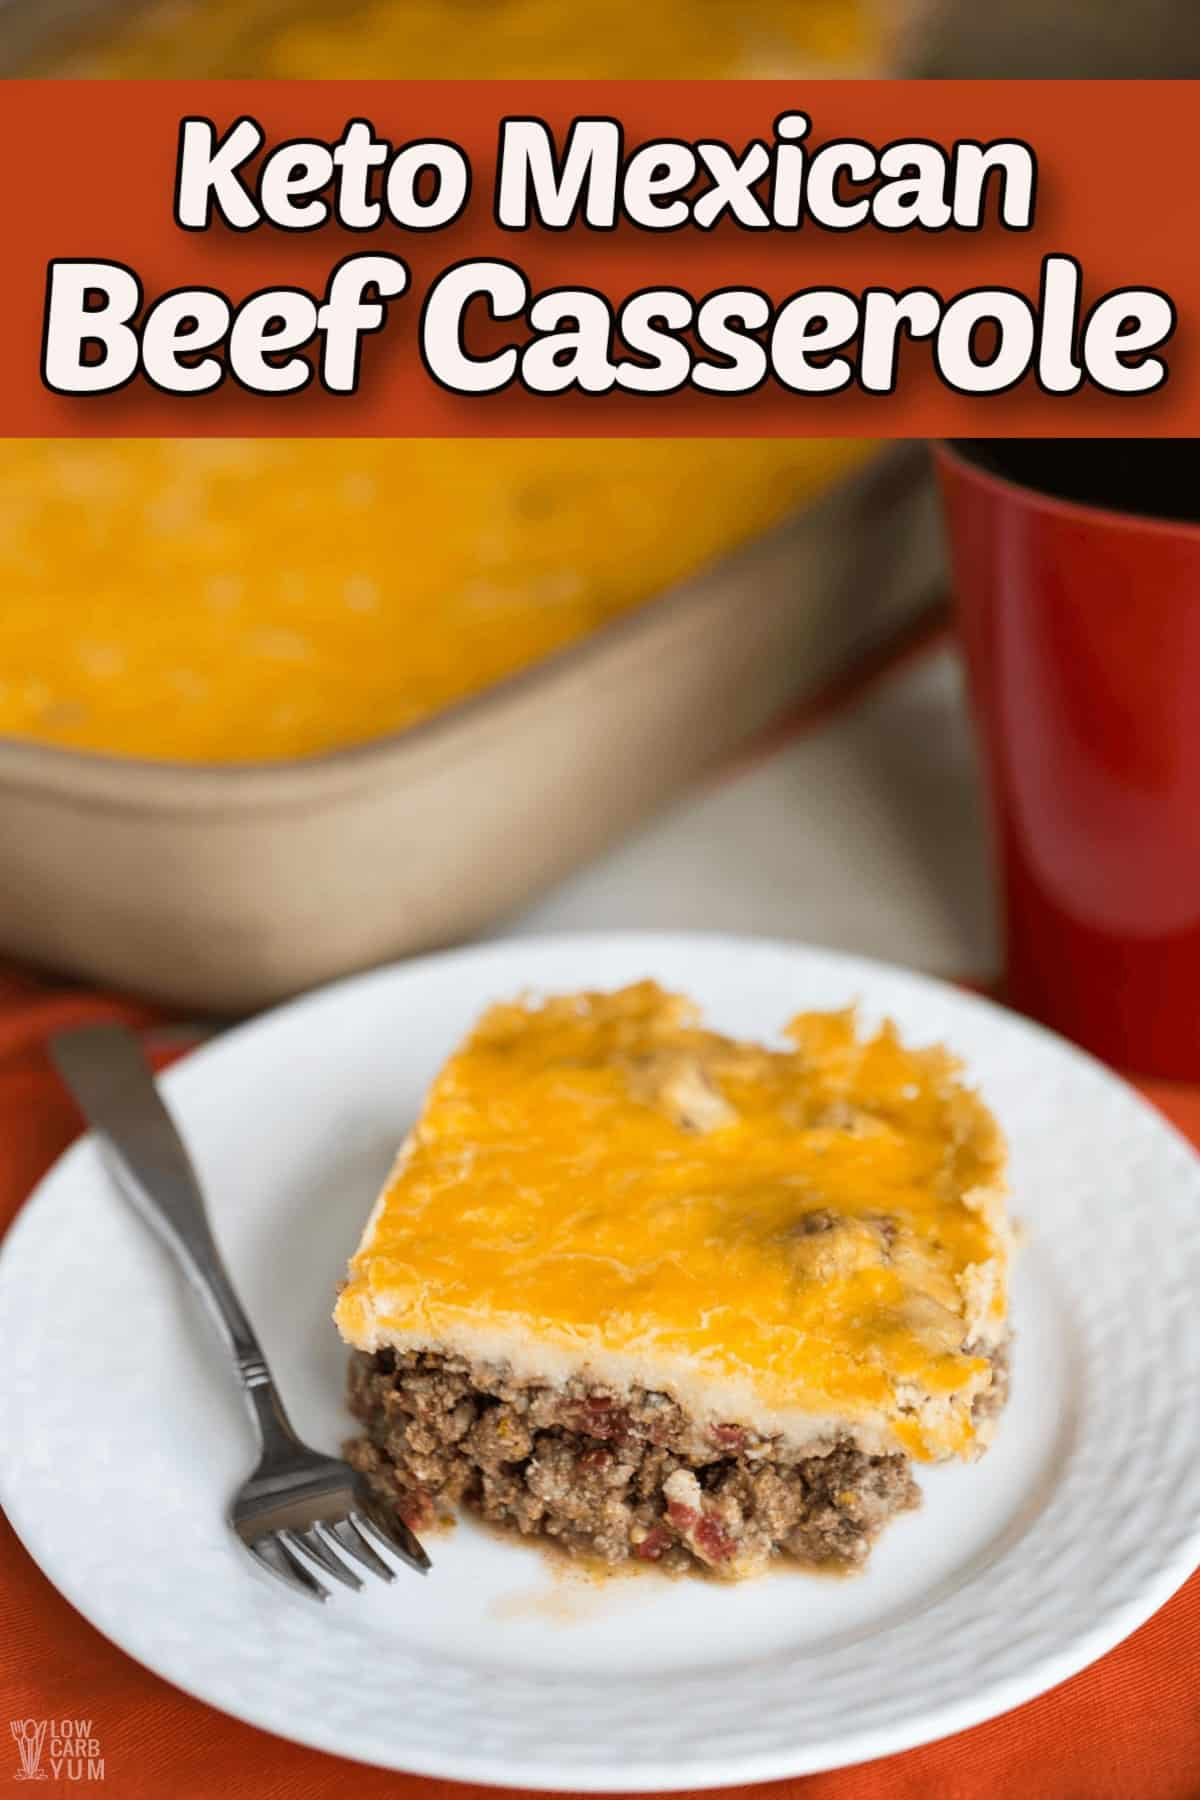 keto mexican beef casserole pintrest image